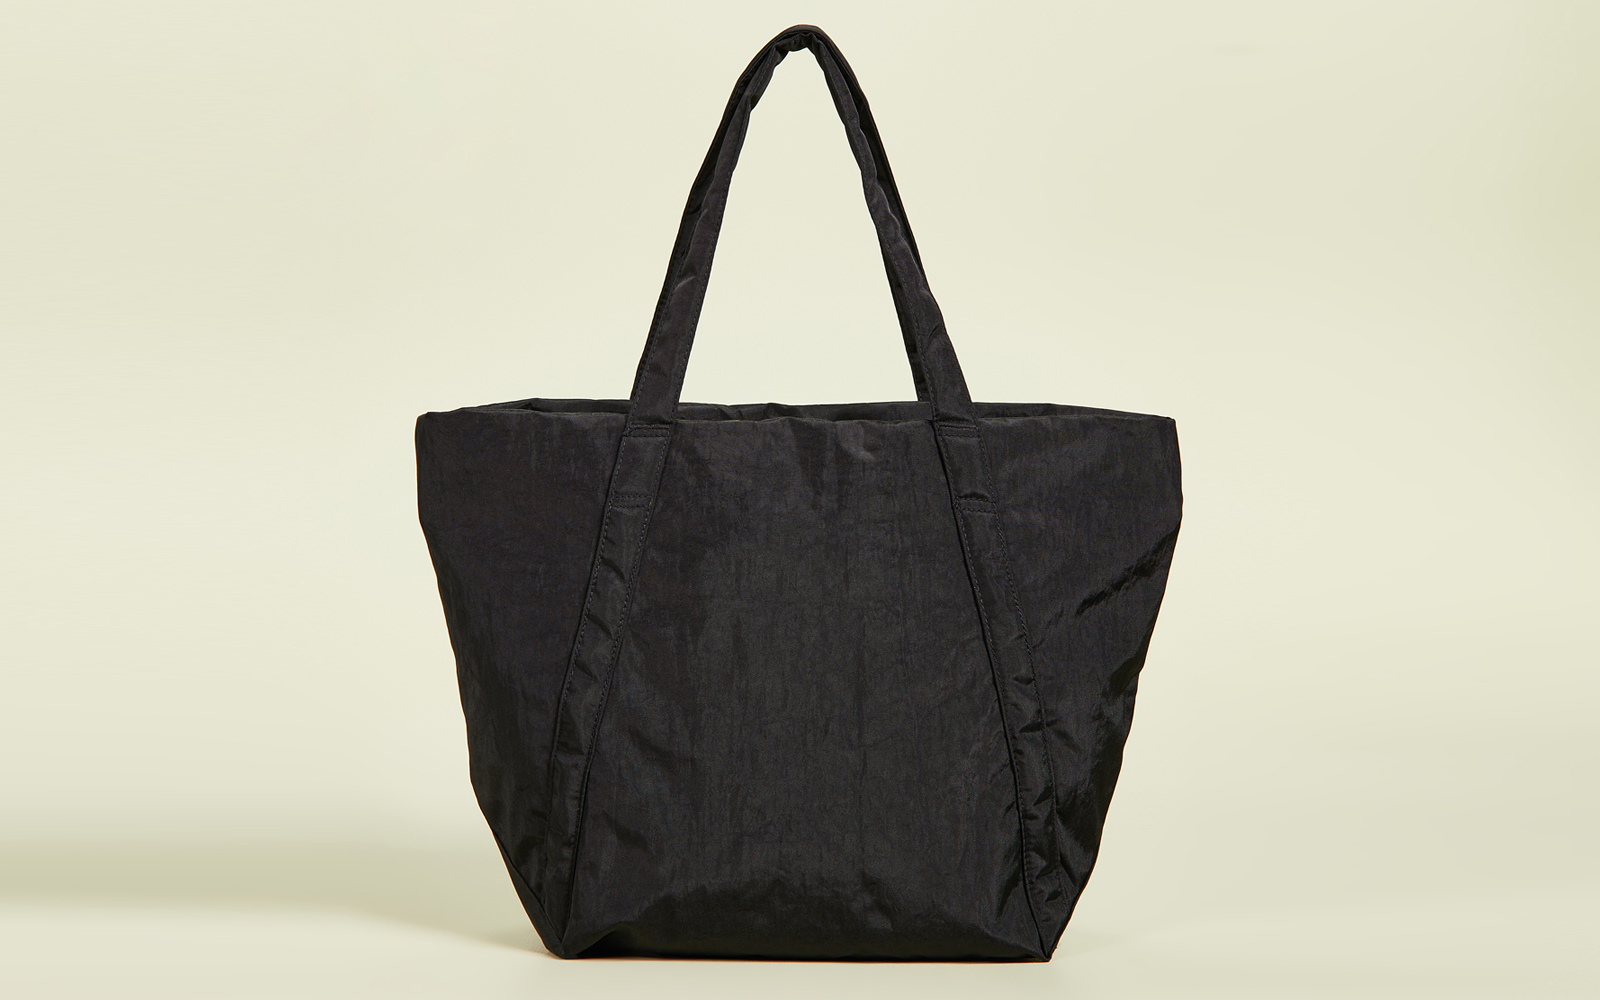 Bagguu Packable cloude bag